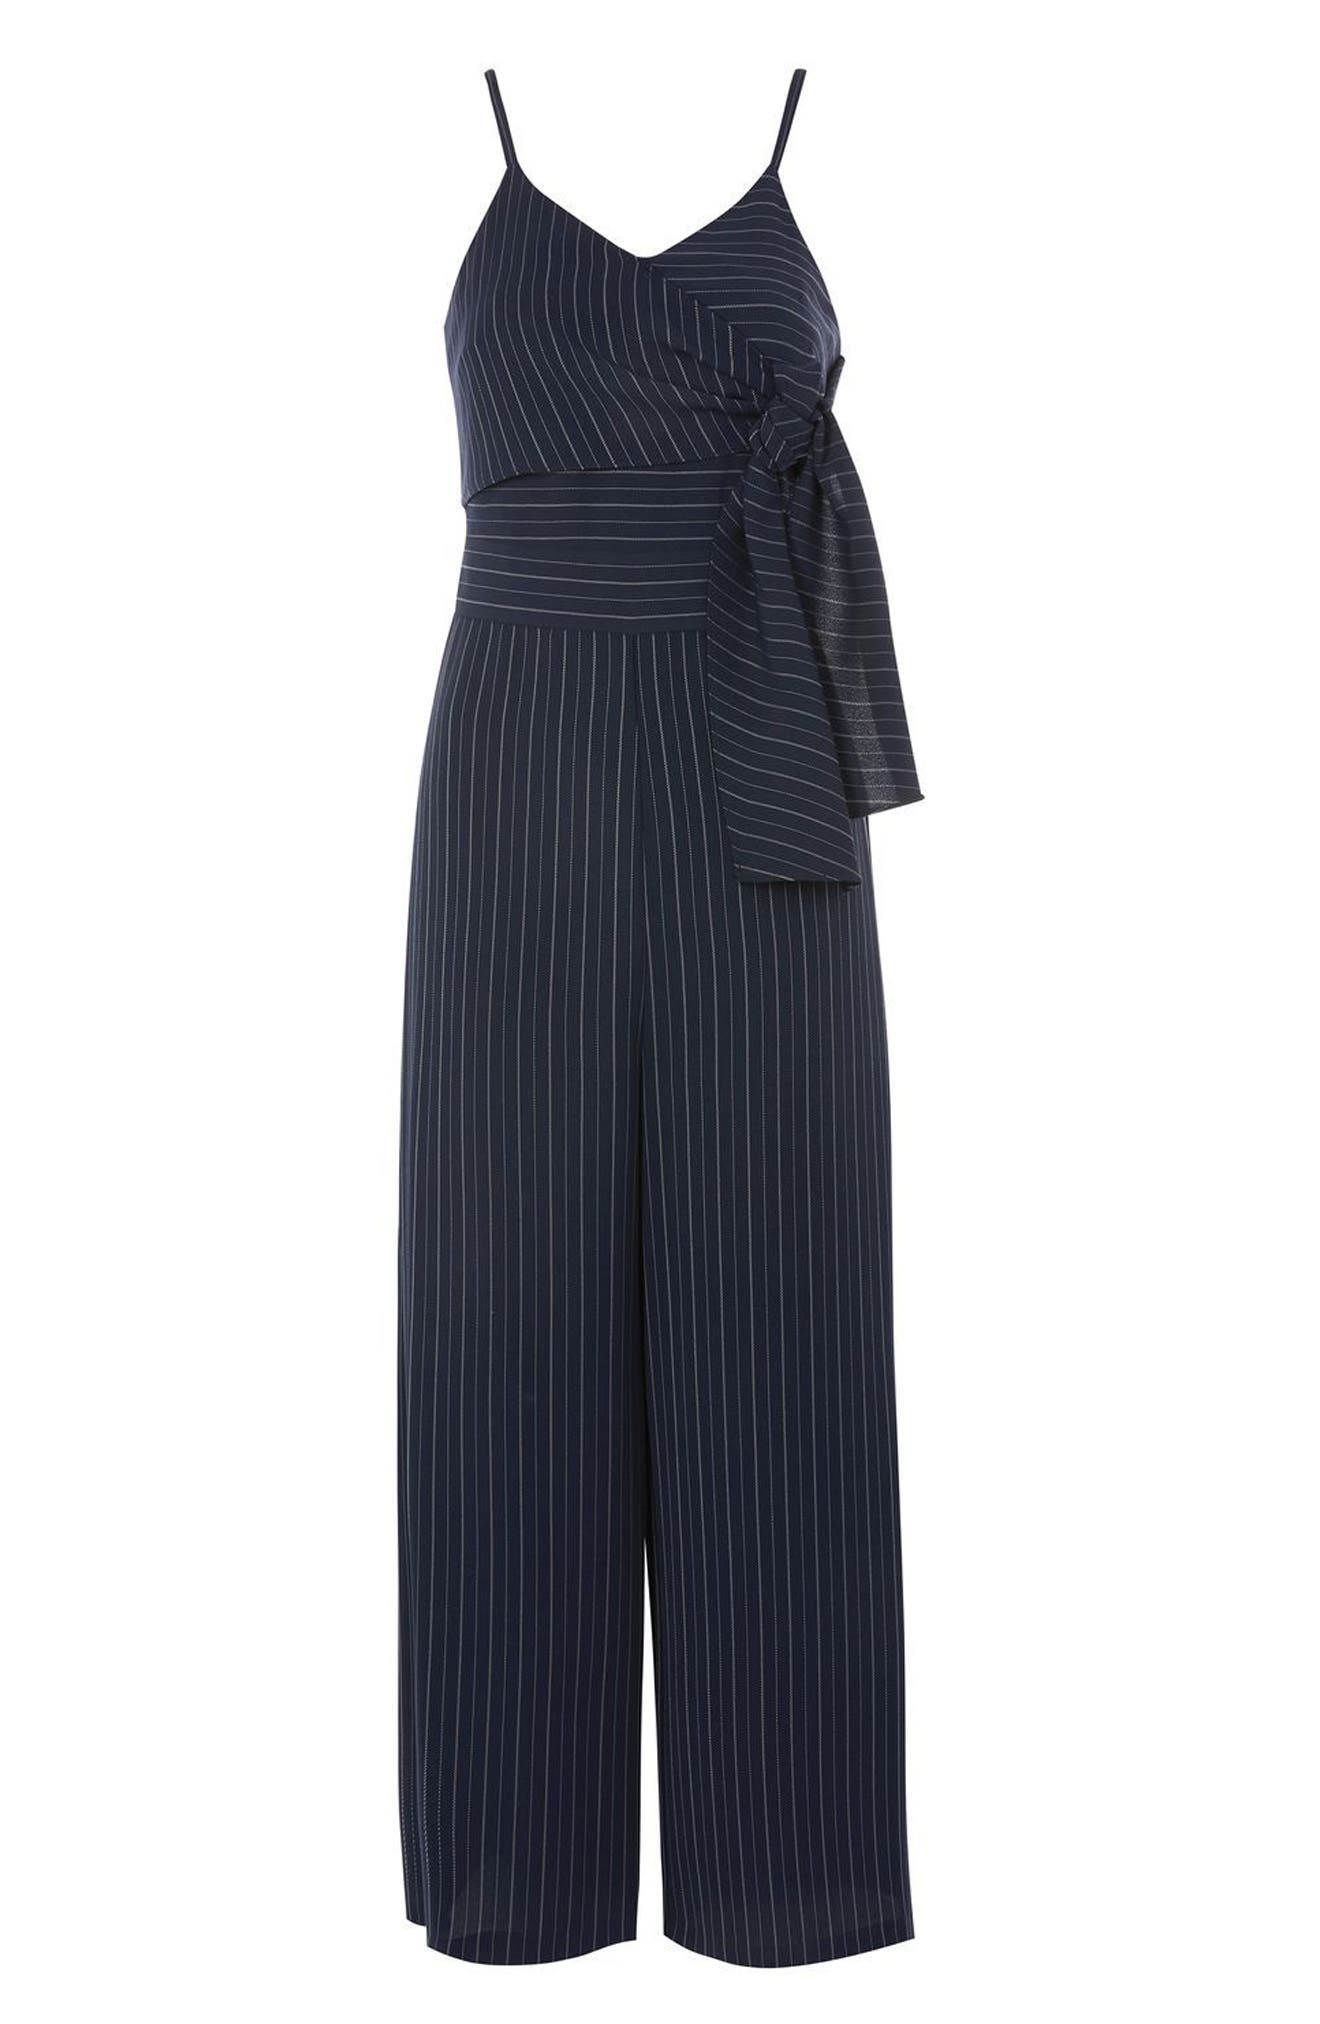 Pinstripe Tie Waist Jumpsuit,                             Alternate thumbnail 4, color,                             Navy Blue